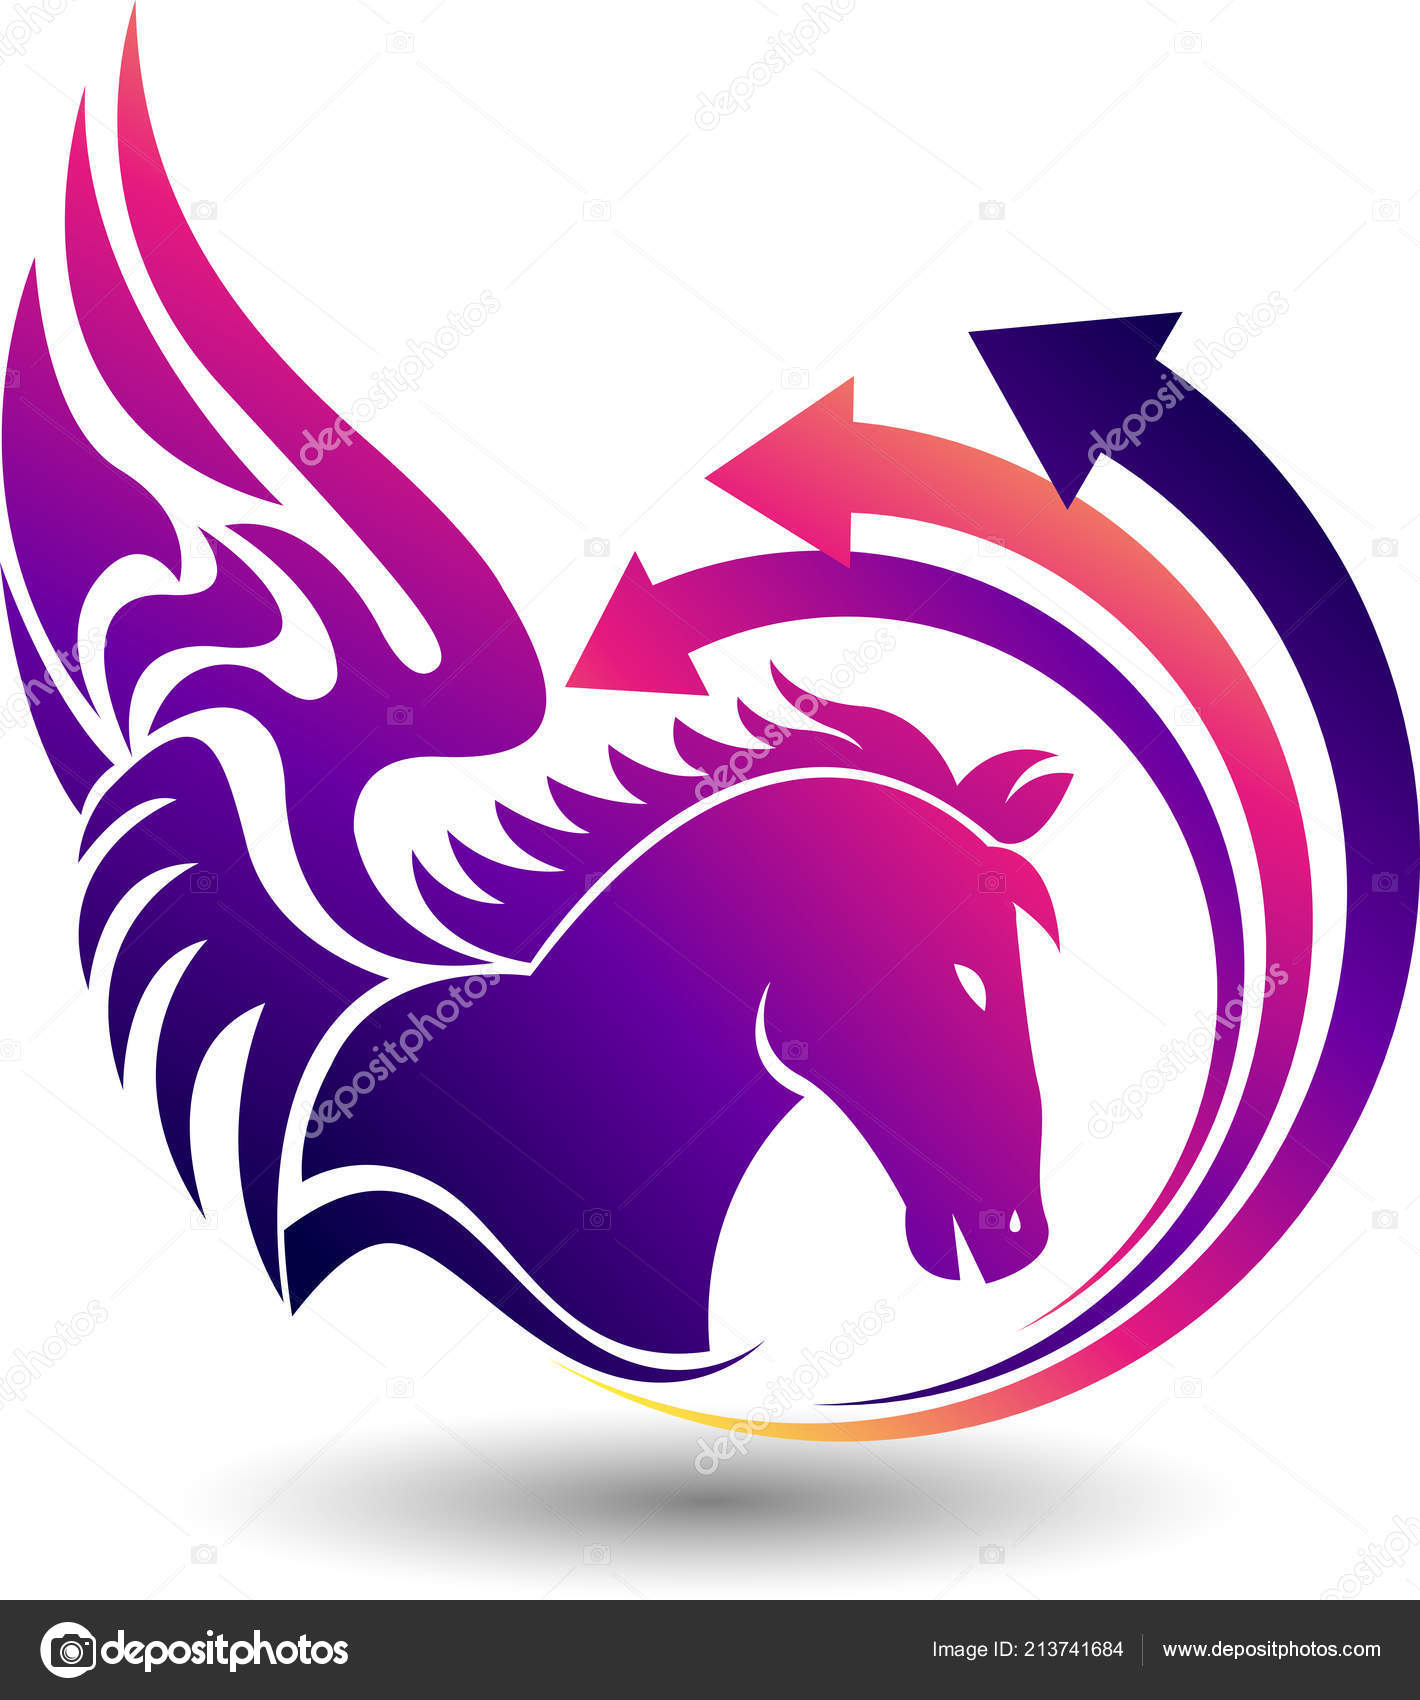 Illustration Art Fly Horse Logo Isolated Background Stock Vector C Magagraphics 213741684